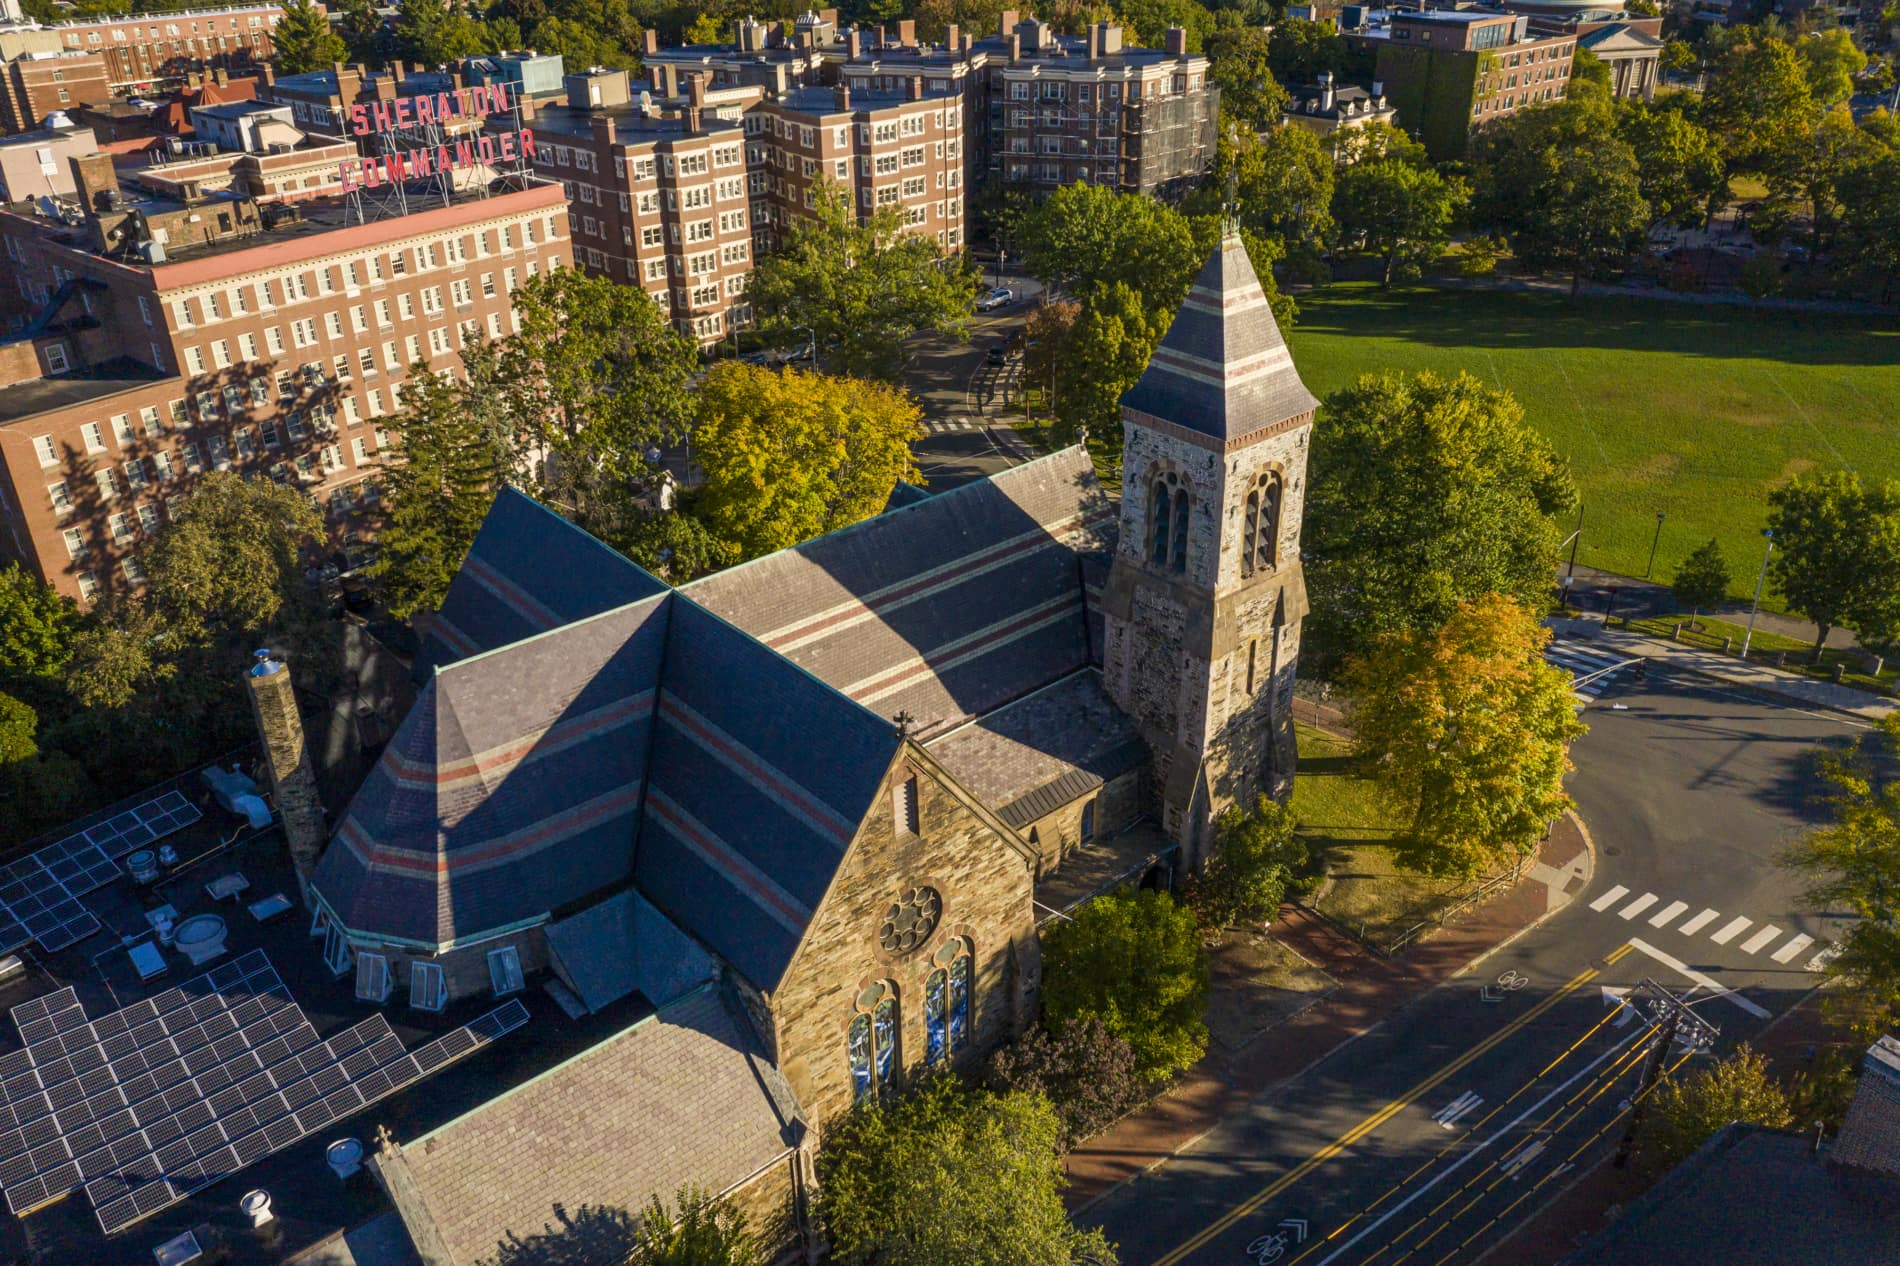 An aerial view of First Church Cambridge in Harvard Square